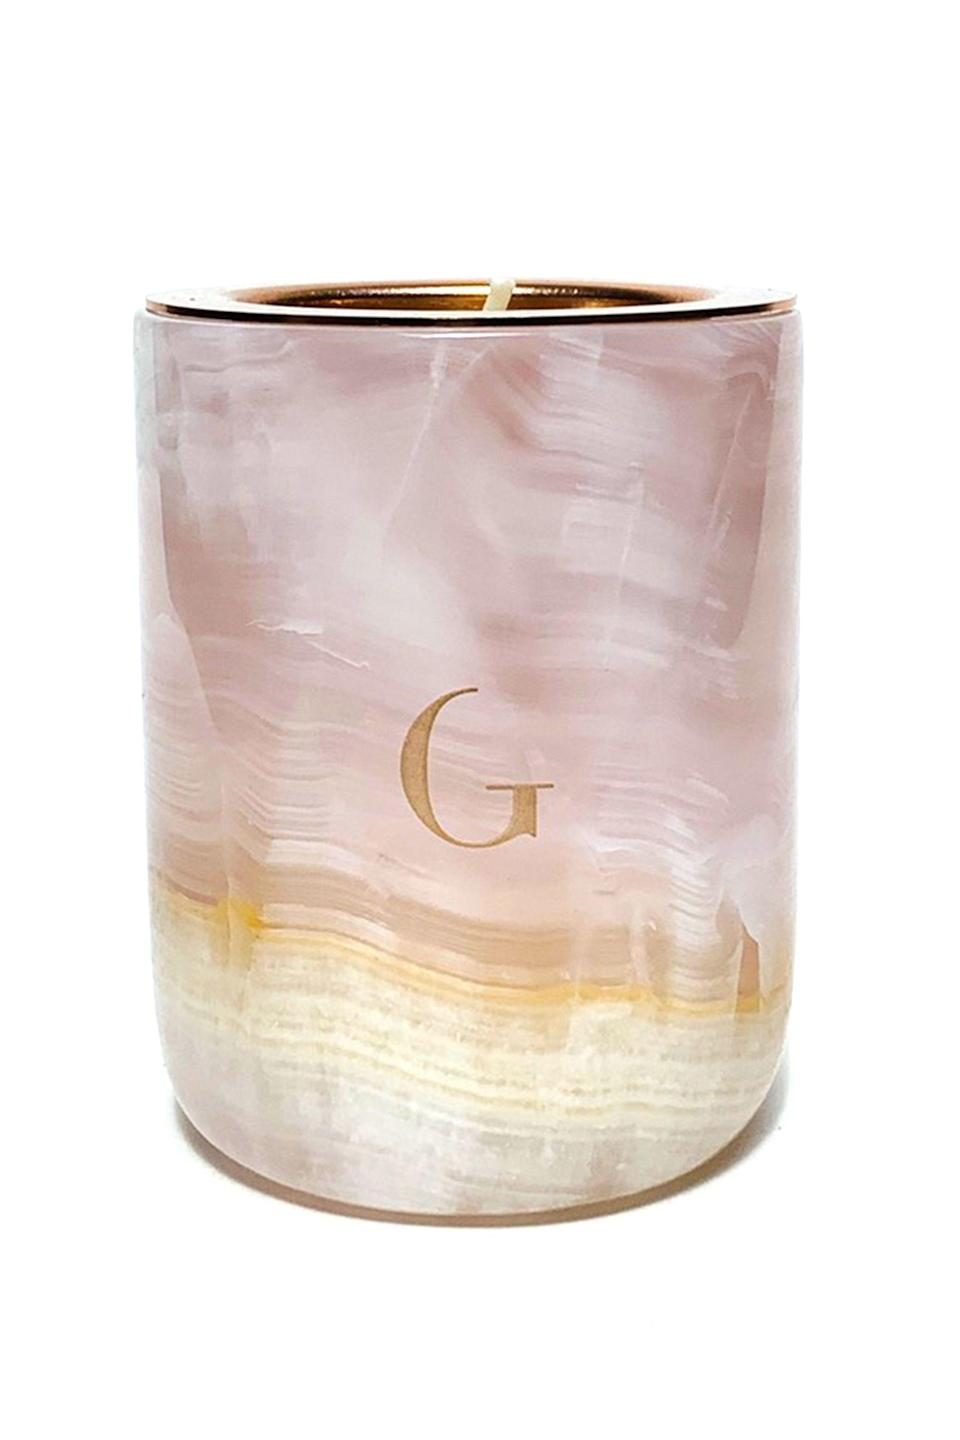 """<p><strong>Gilded Body</strong></p><p>gildedbody.com</p><p><strong>$68.00</strong></p><p><a href=""""https://gildedbody.com/collections/the-marble-candle/products/pink-onyx-marble-candle"""" rel=""""nofollow noopener"""" target=""""_blank"""" data-ylk=""""slk:Shop Now"""" class=""""link rapid-noclick-resp"""">Shop Now</a></p><p>When you've burned through this candle, simply order a wax refill from the same site and get lit again and again and again. </p>"""